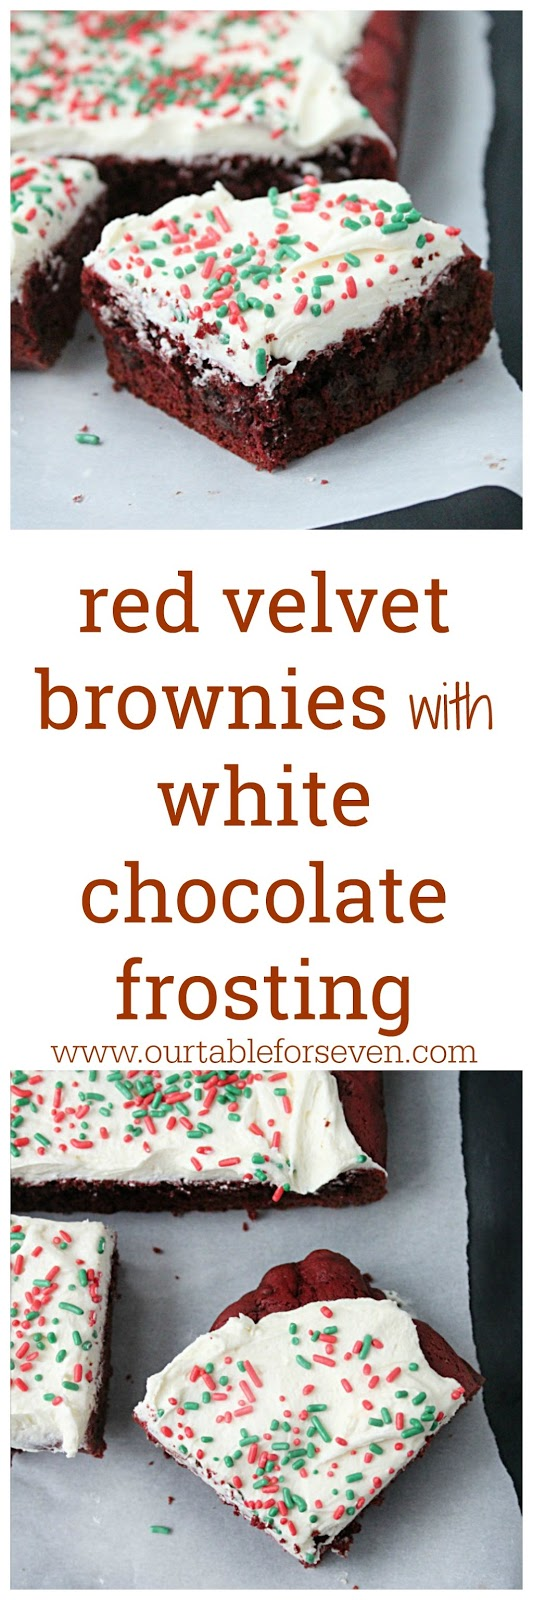 Red Velvet Brownies with White Chocolate Frosting from Table for Seven